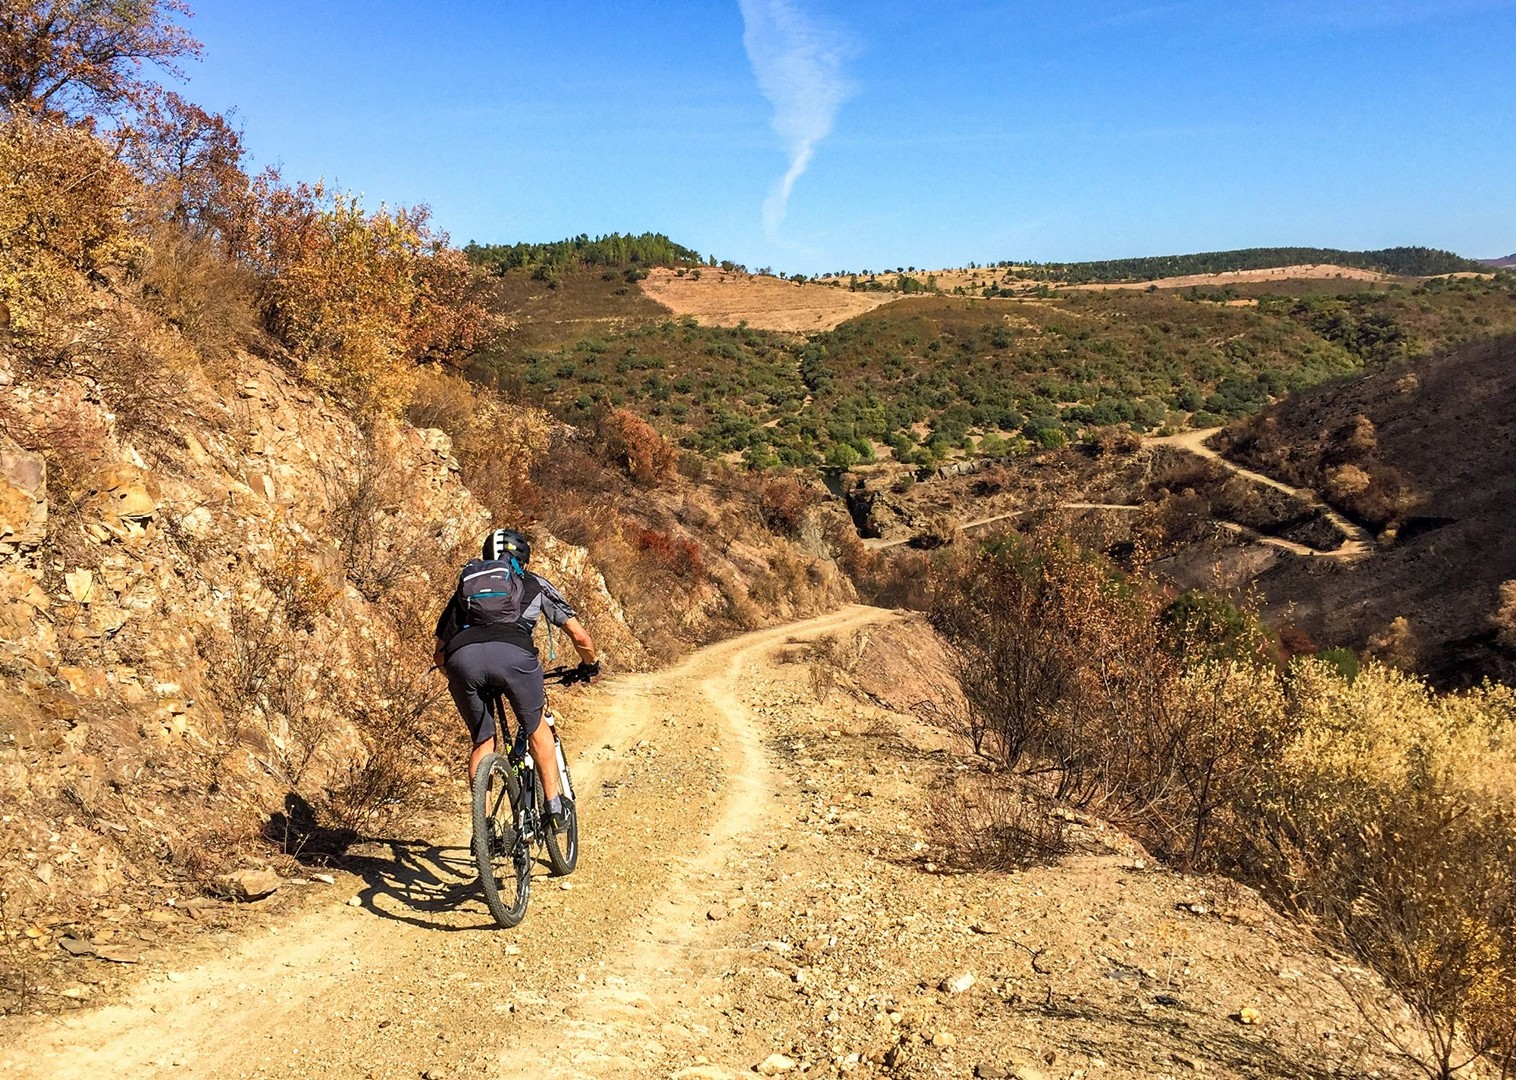 roman-trails-holiday-with-saddle-skedaddle-guided-mountain-bike.jpg - Portugal - Roman Trails - Guided Mountain Bike Holiday - Mountain Biking